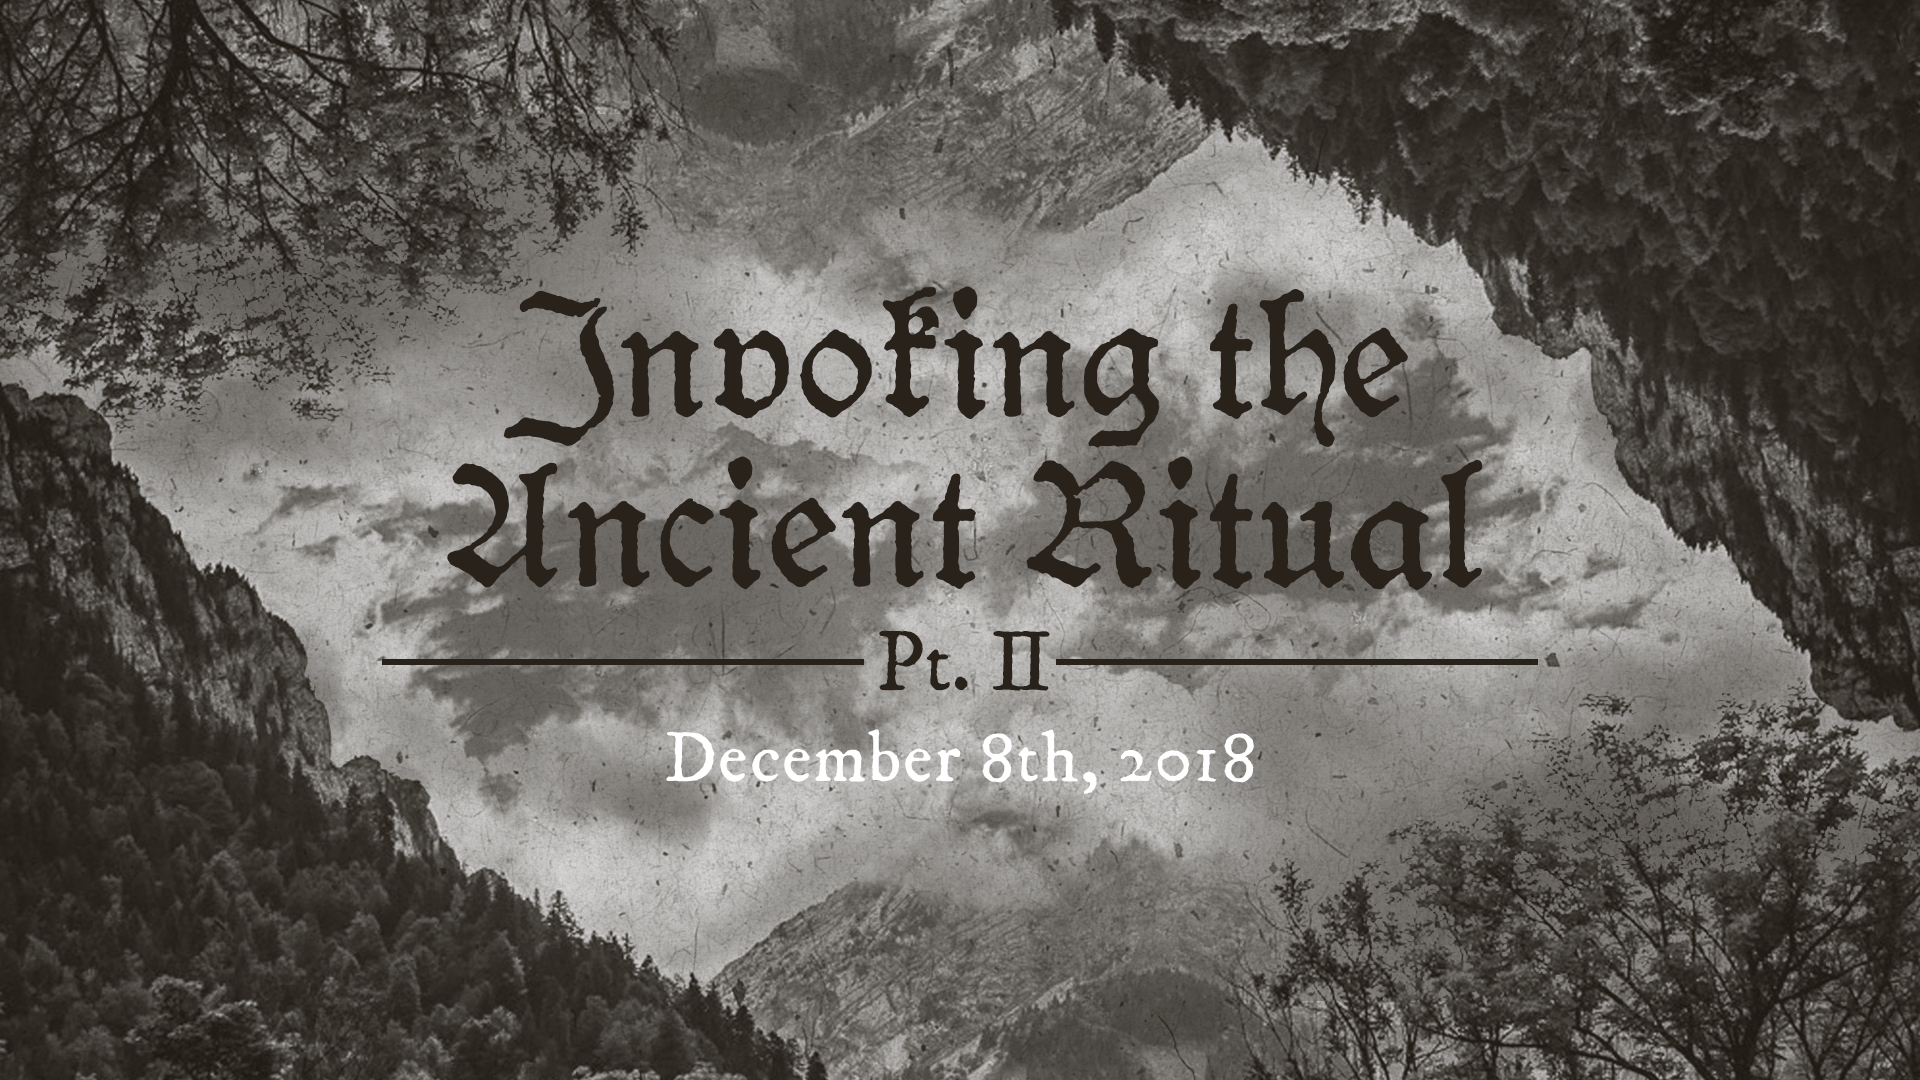 Preview: Invoking the ancient ritual Pt. II